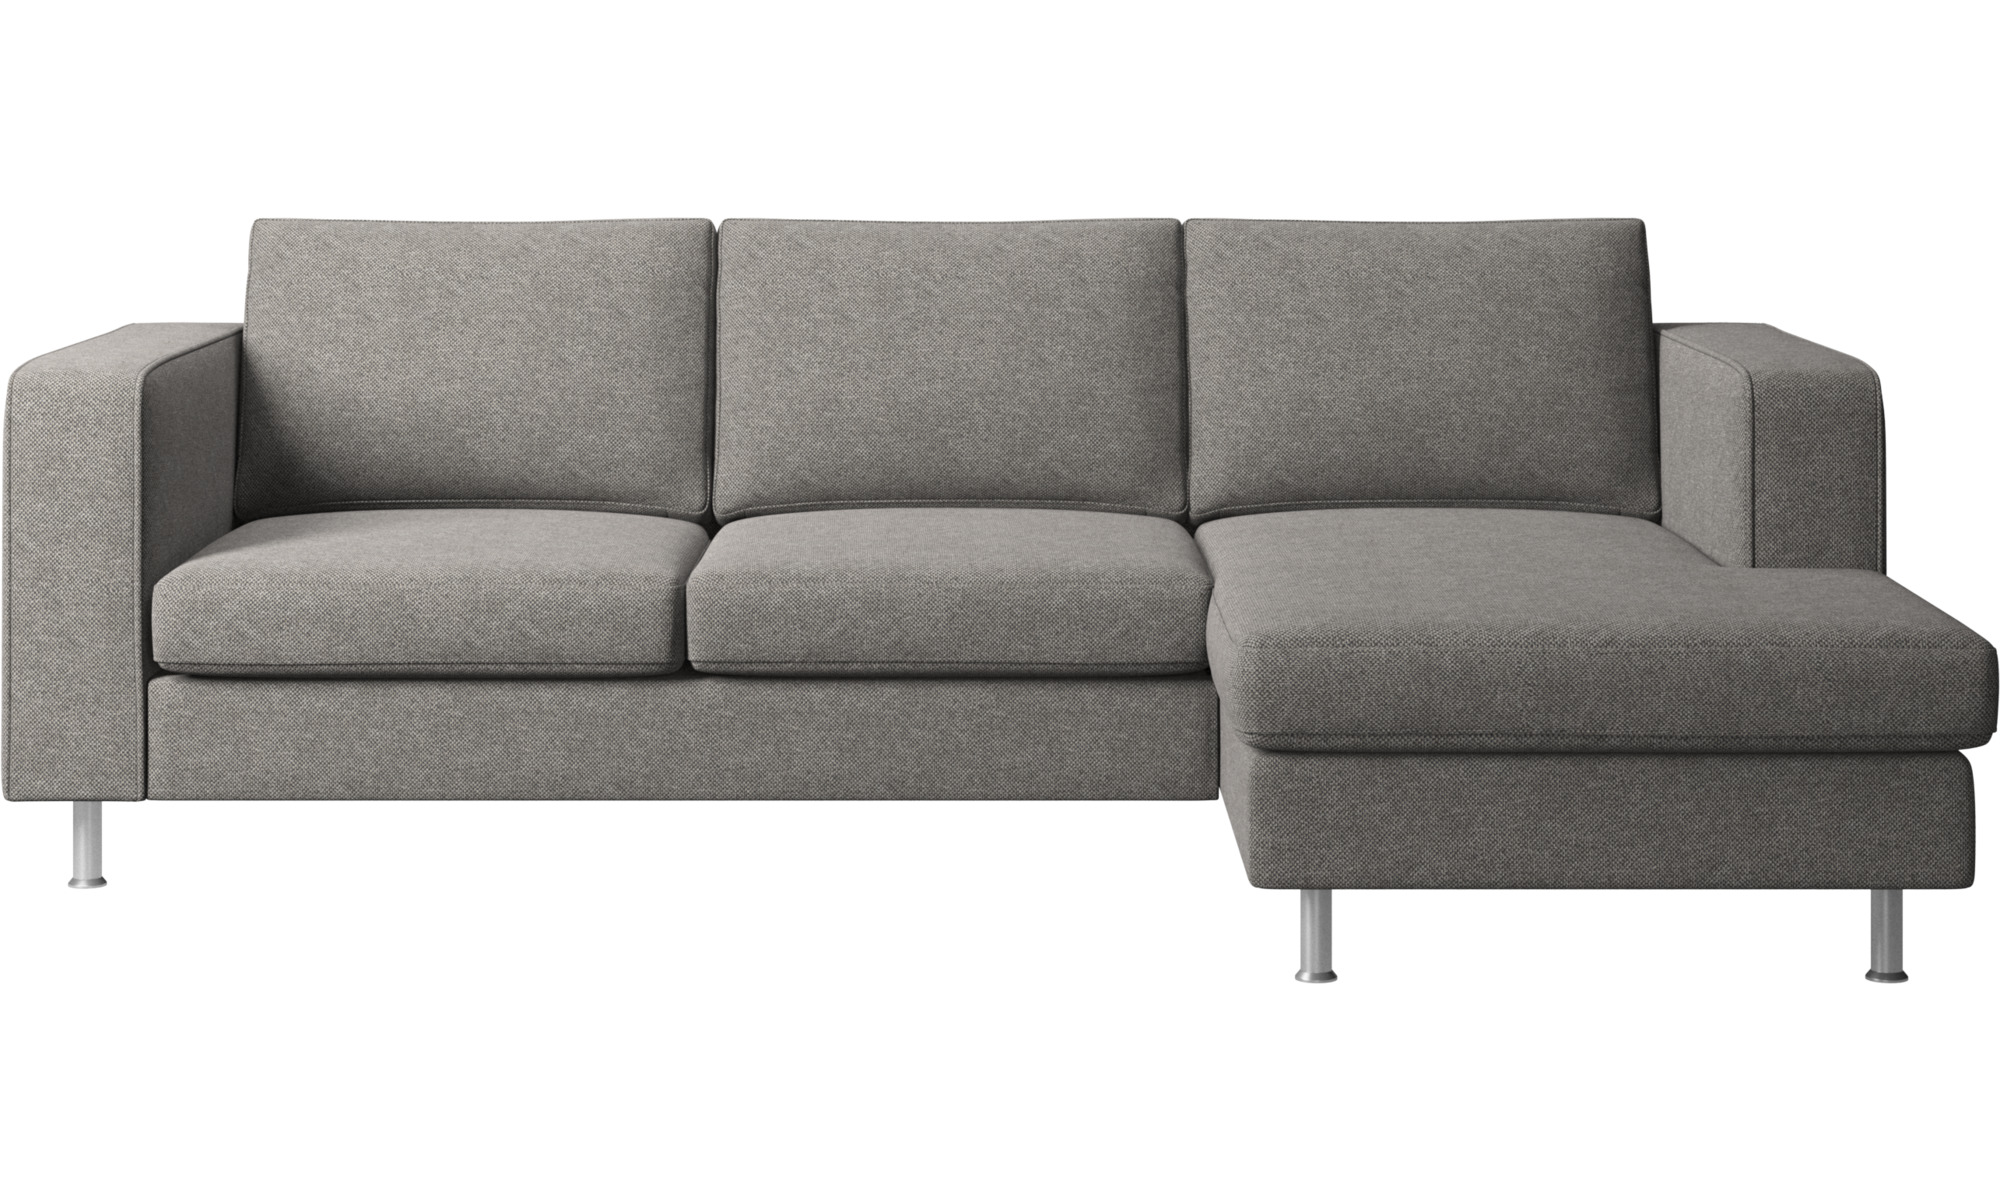 sofa chaise lounge chaise lounge sofas indivi 2 sofa with resting unit boconcept